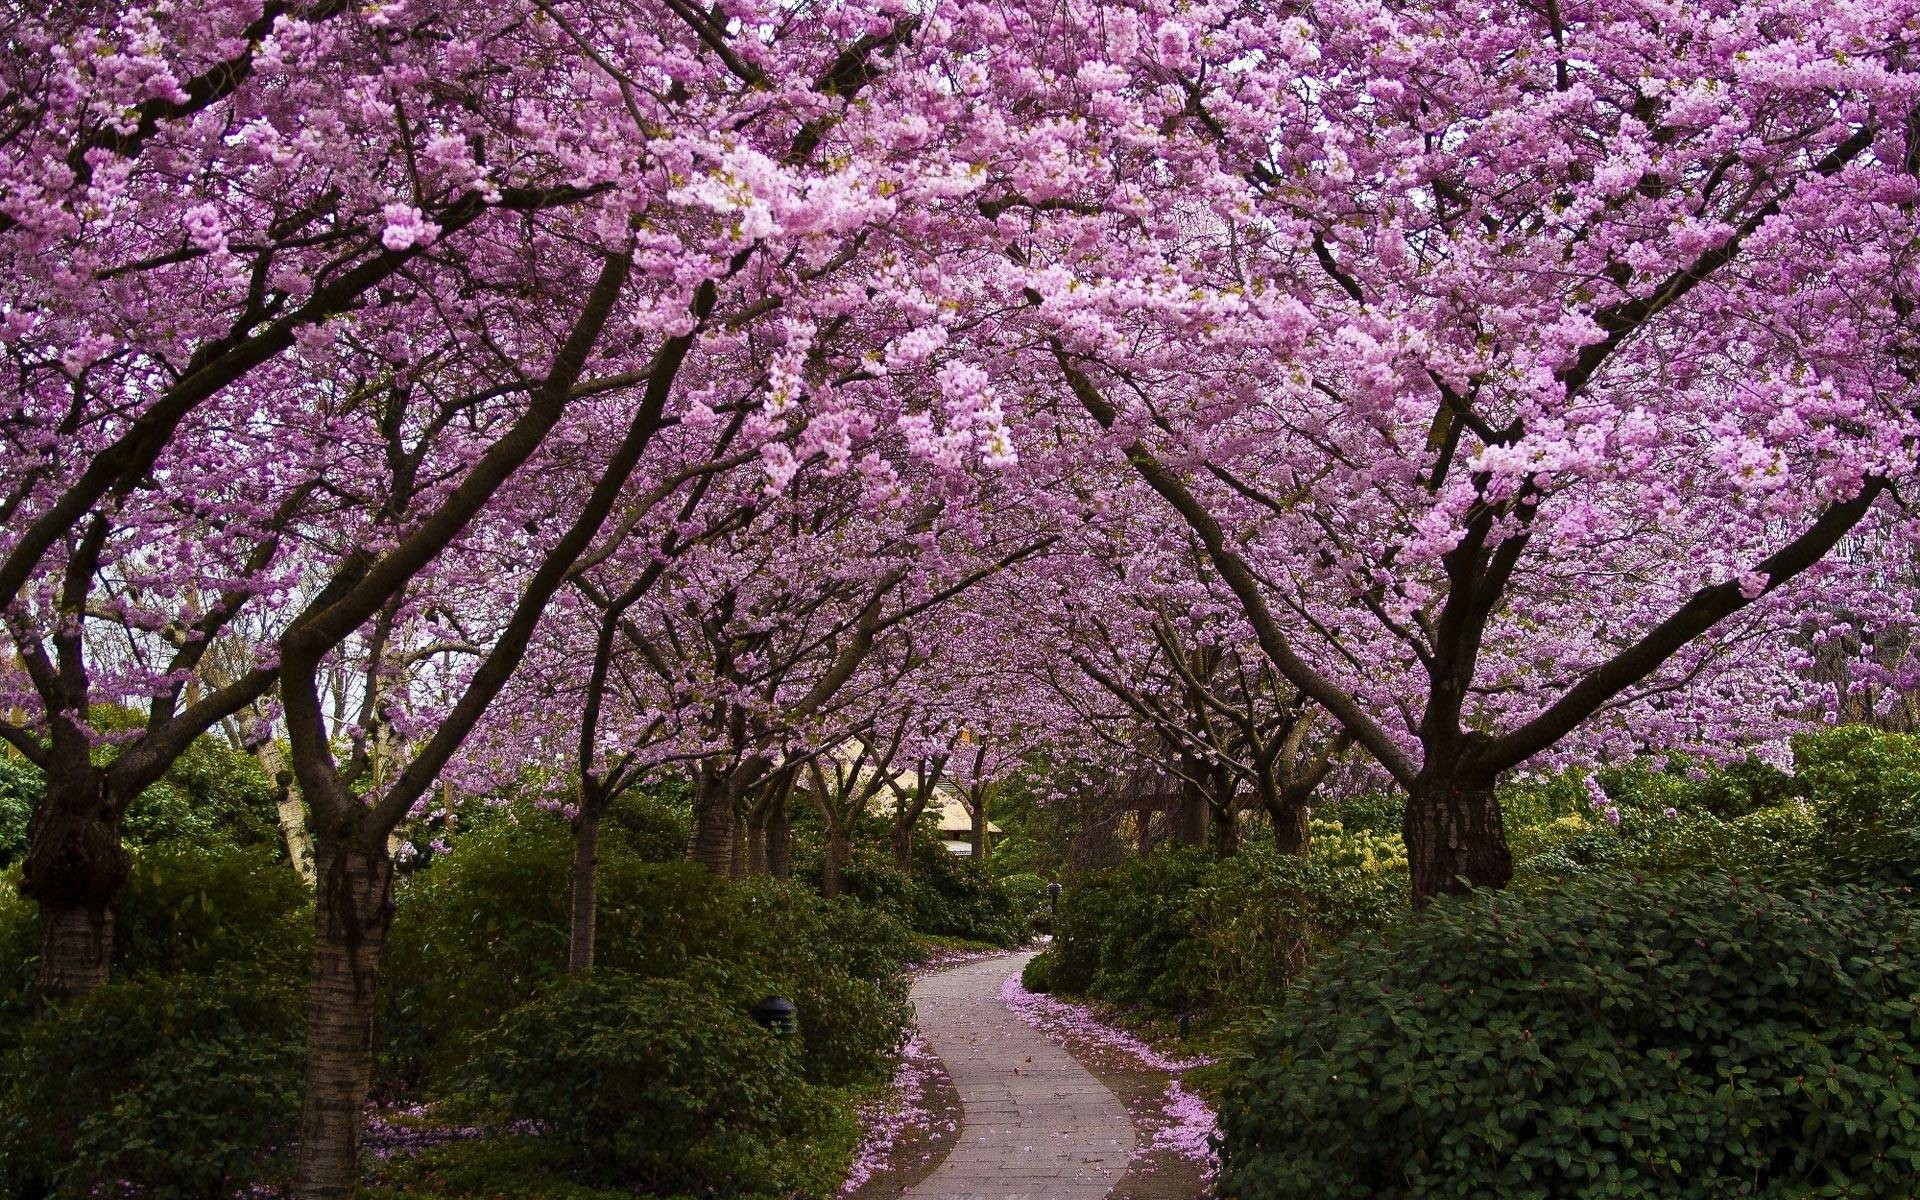 Widescreen Springtime Wallpapers Images